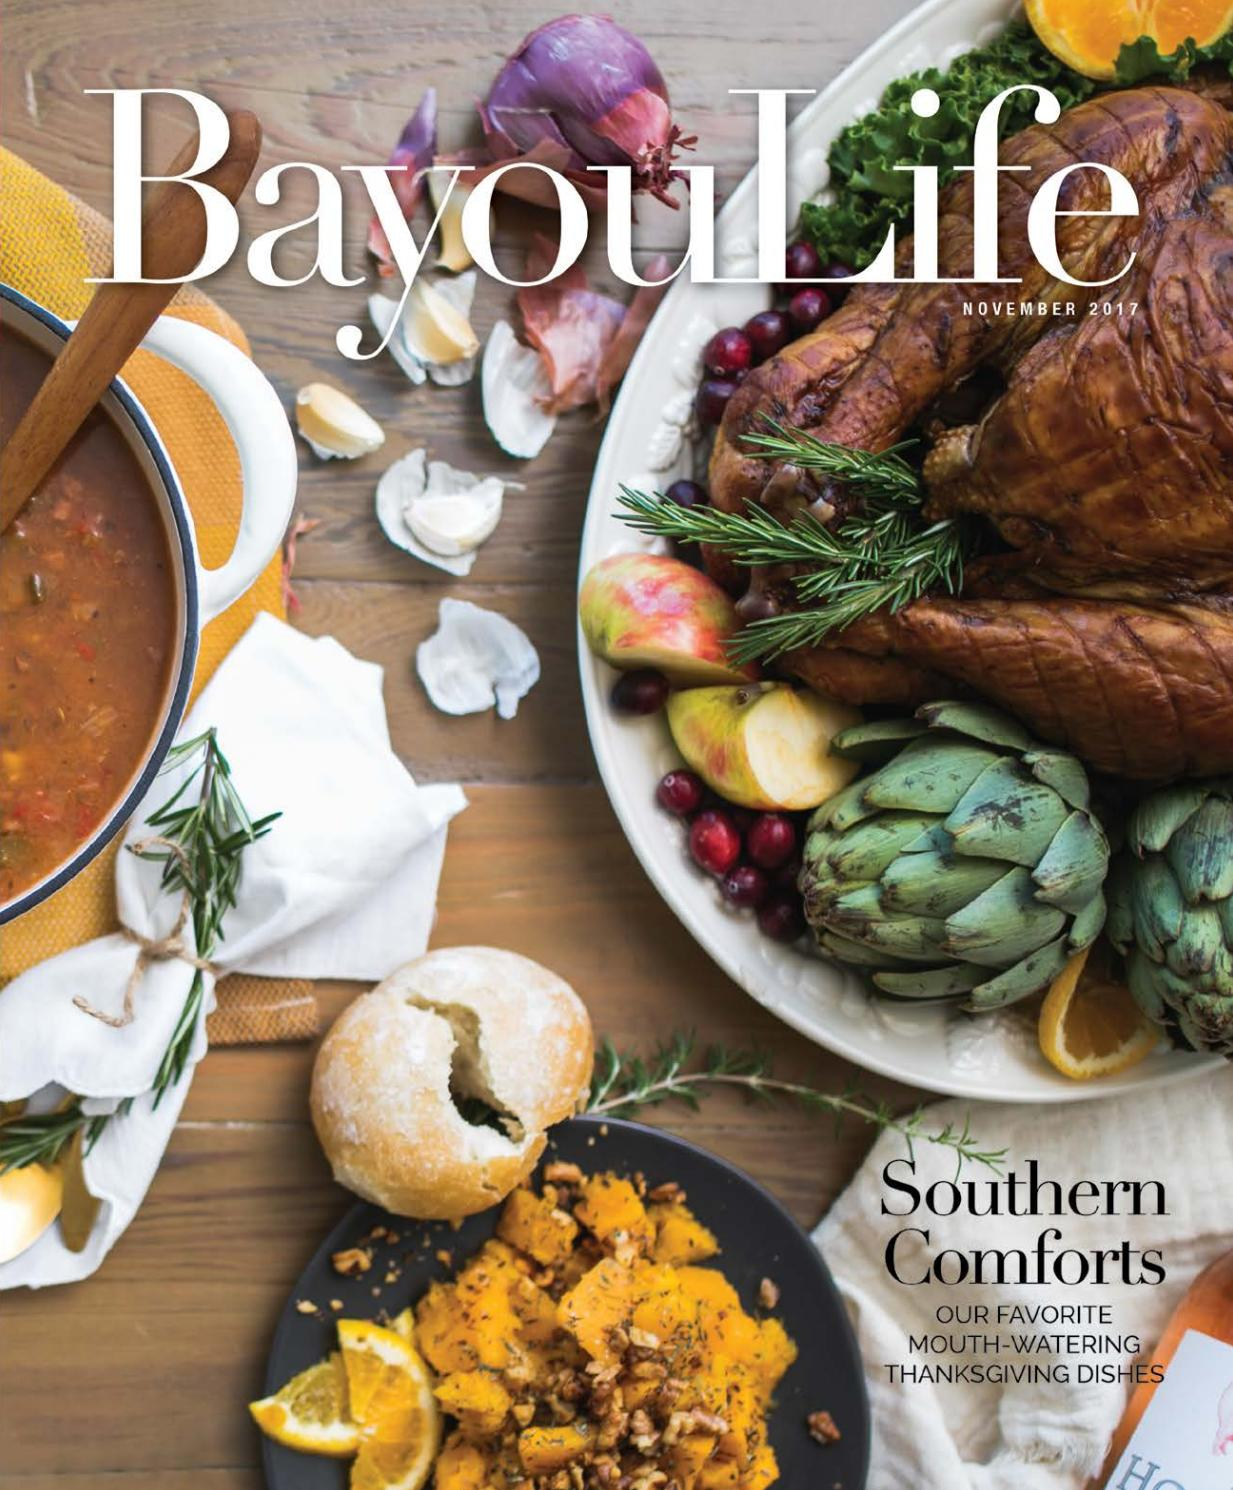 Bayoulife November 2017 By Magazine Issuu Bianca Top Leux Studio Silver M